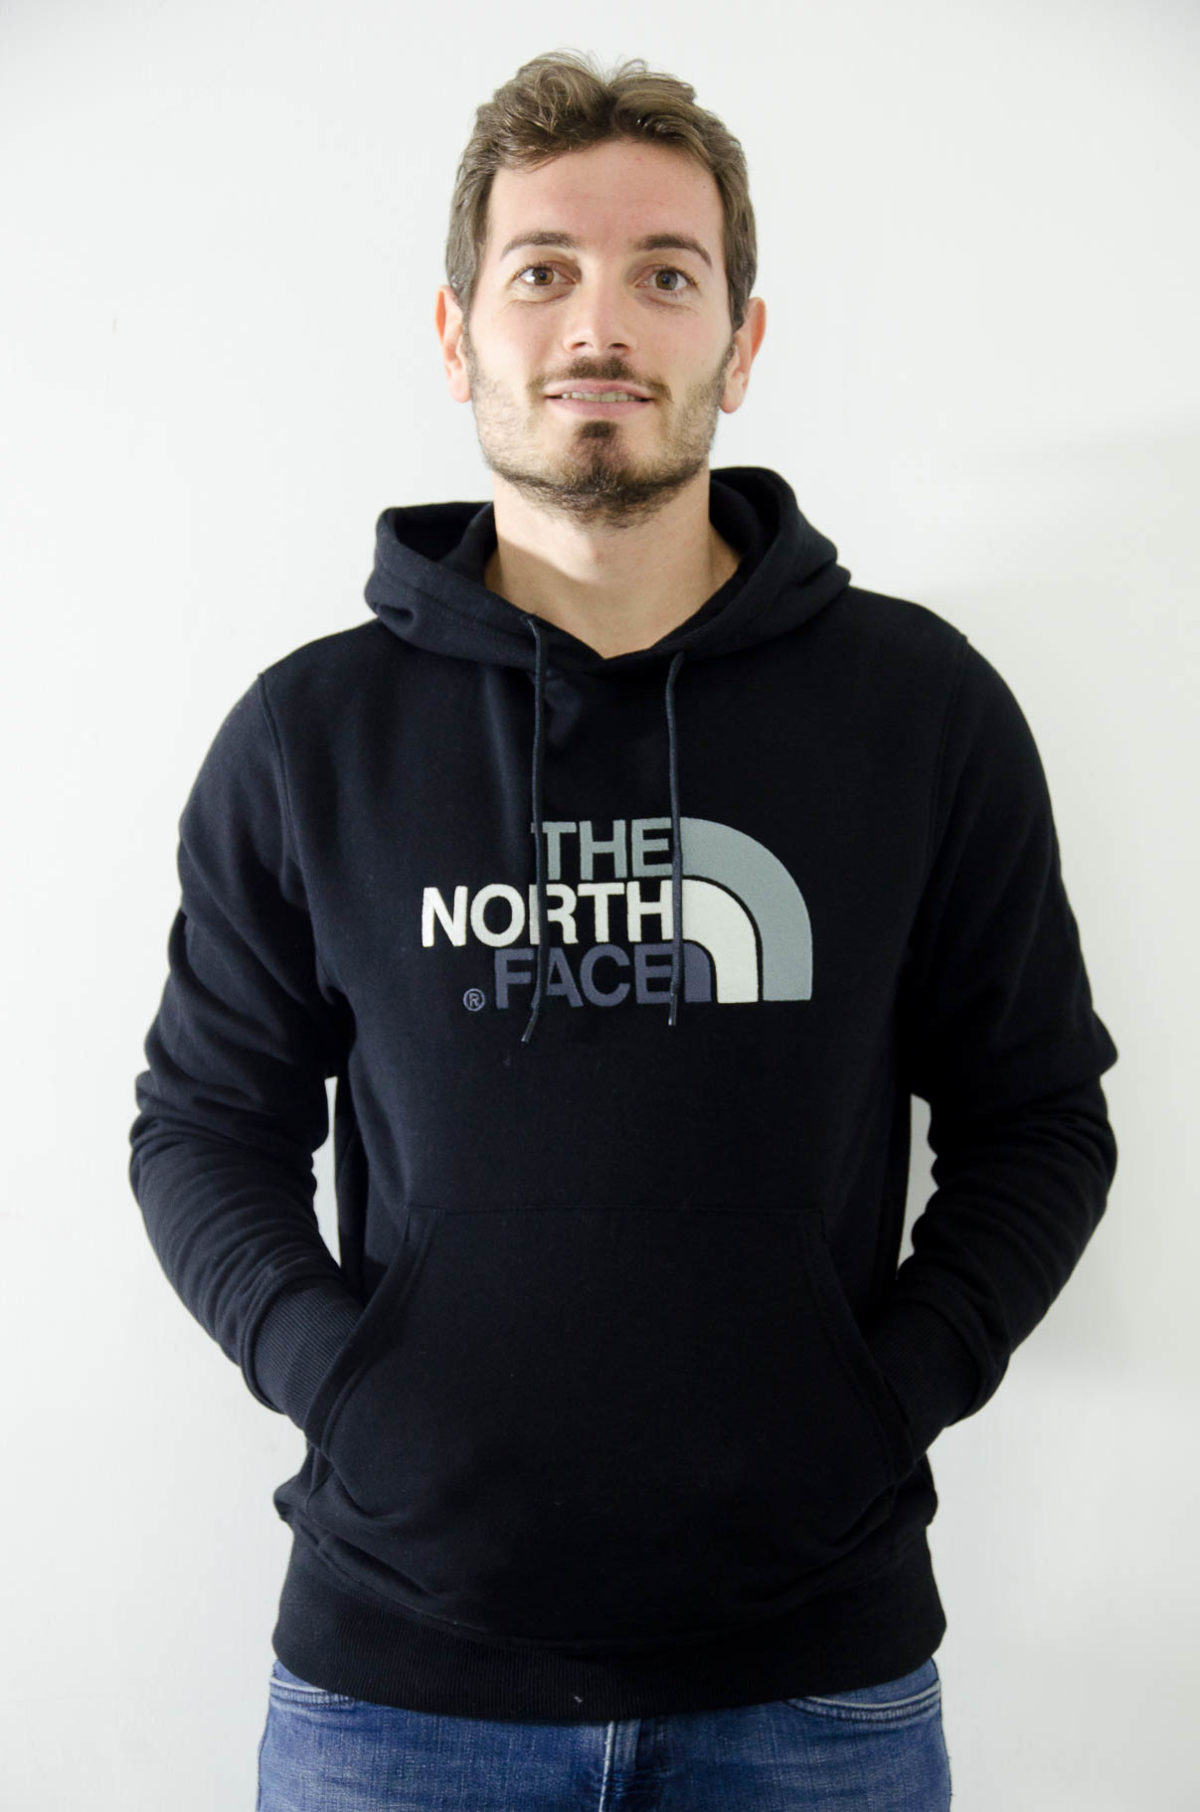 The North Face Felpa Uomo